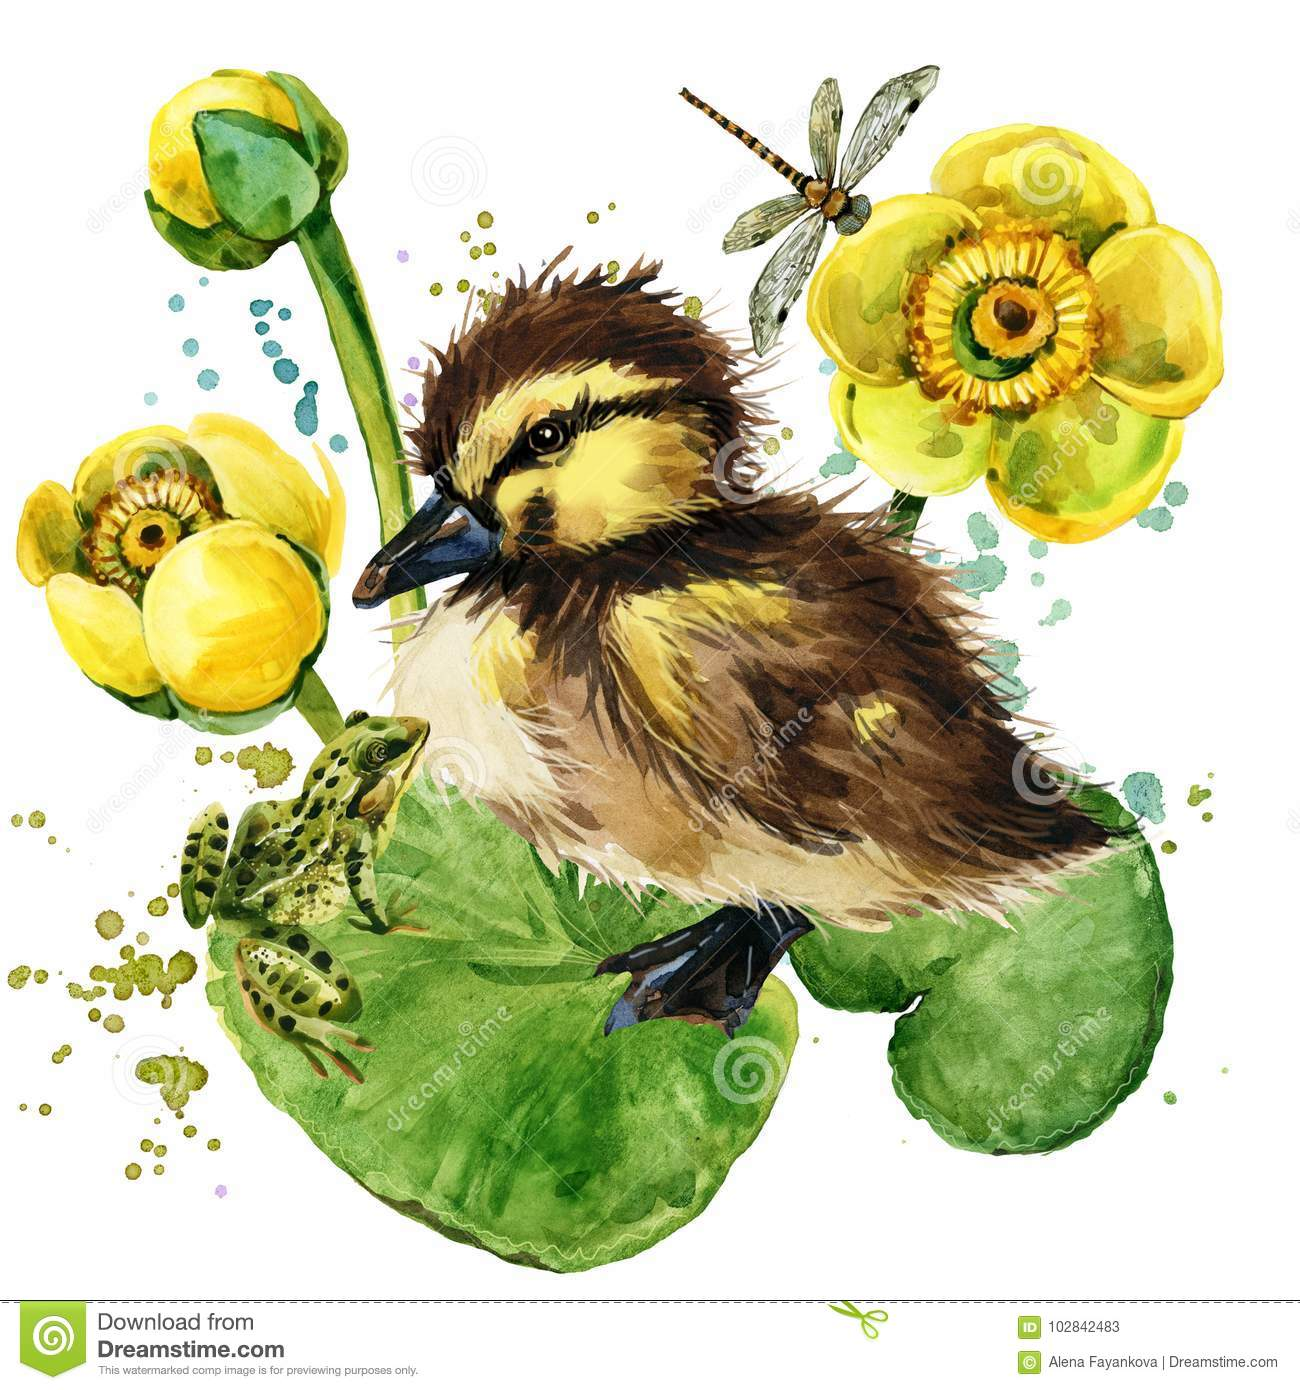 Cute little duckling. yellow water lily watercolor background.